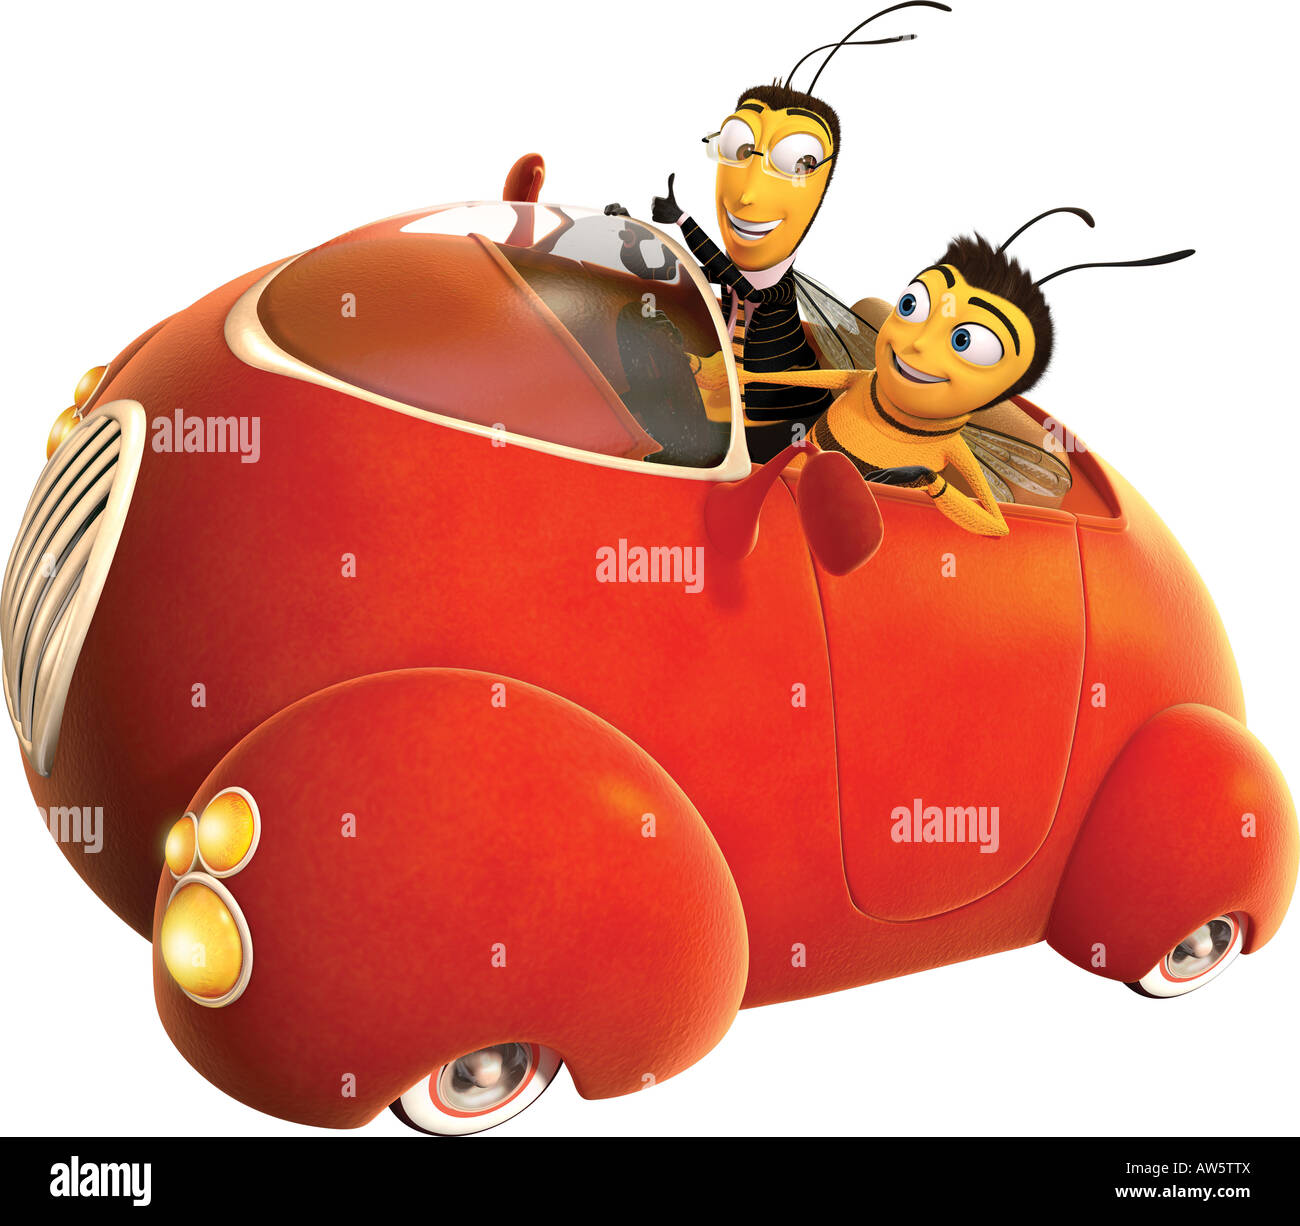 BEE MOVIE 2007 Dreamworks Animation SKG Film Voiced By Jerry Seinfeld And Renee Zellweger